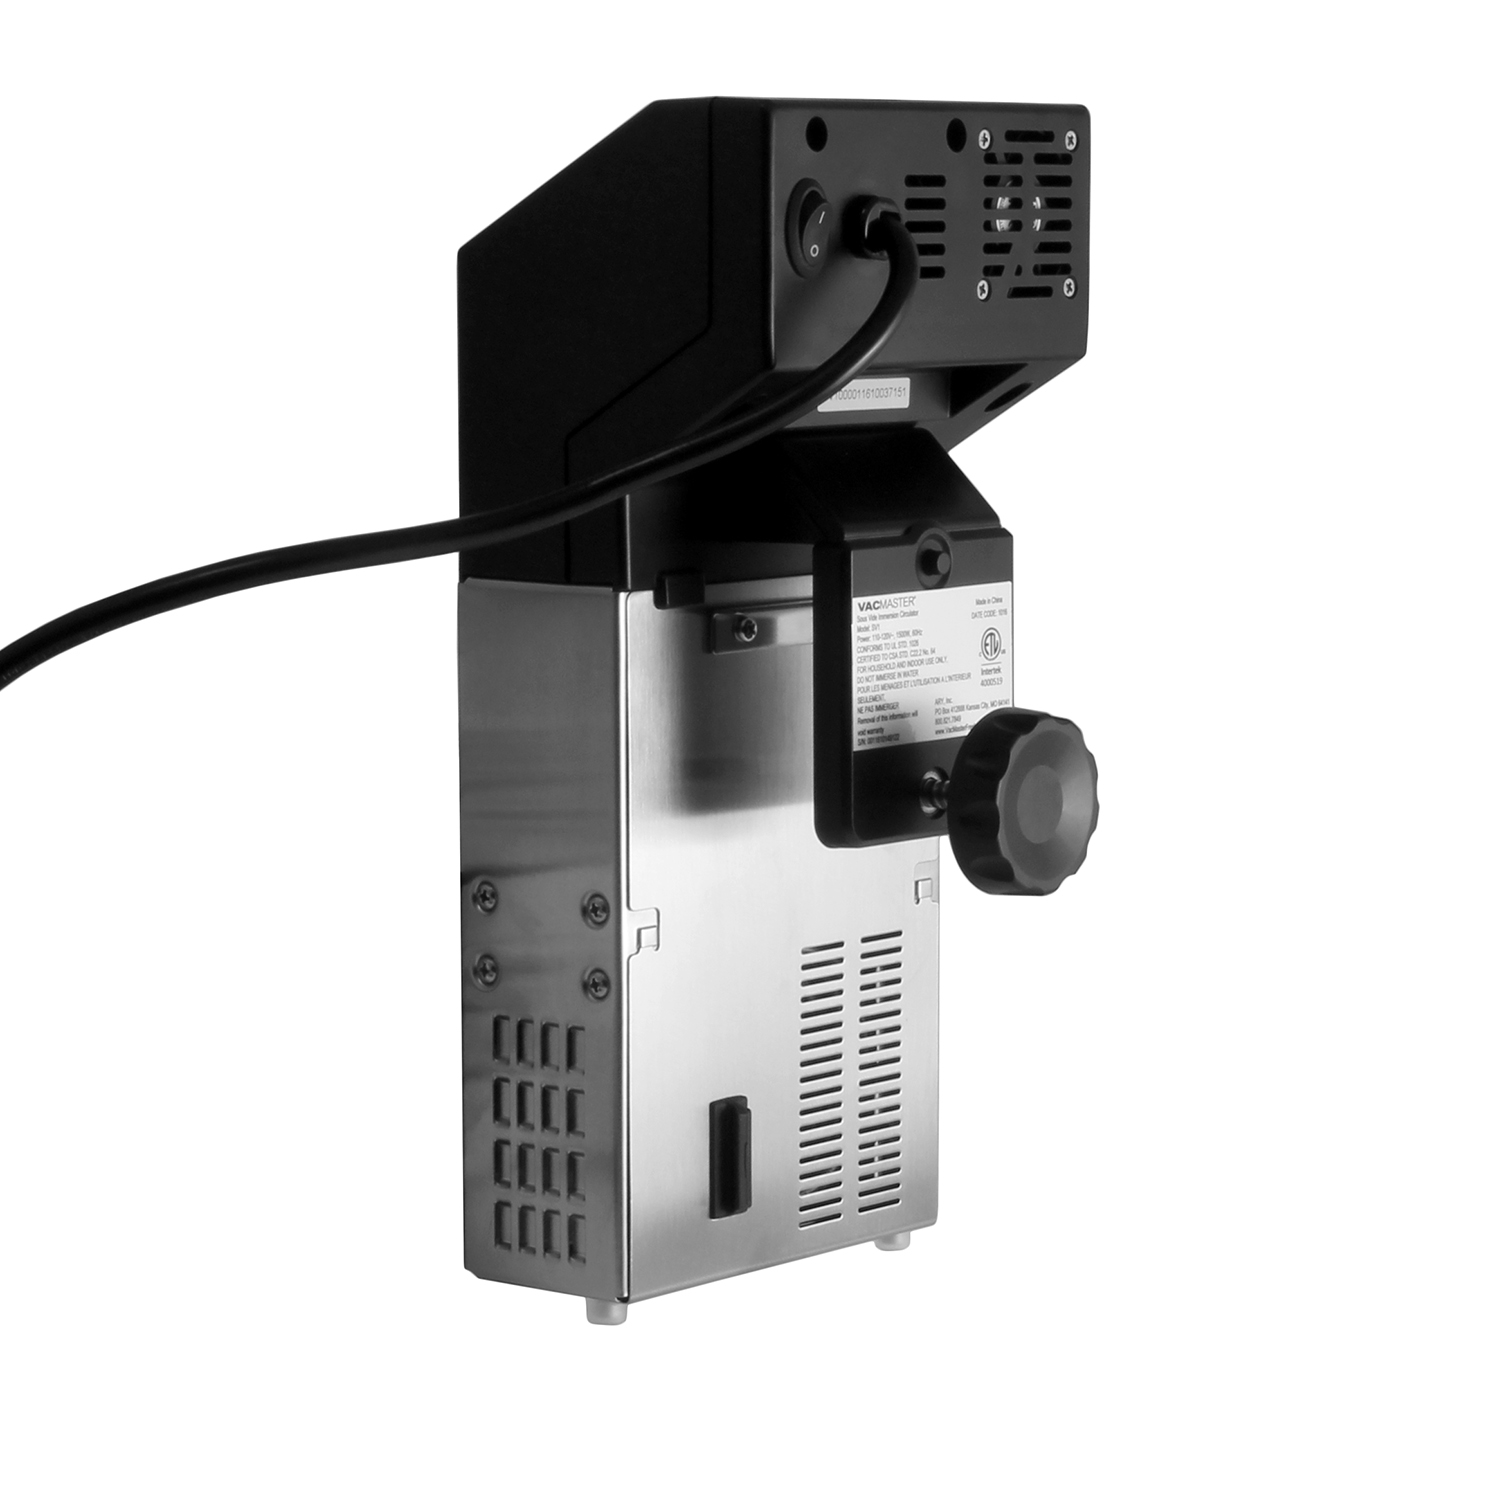 product description - Immersion Circulator